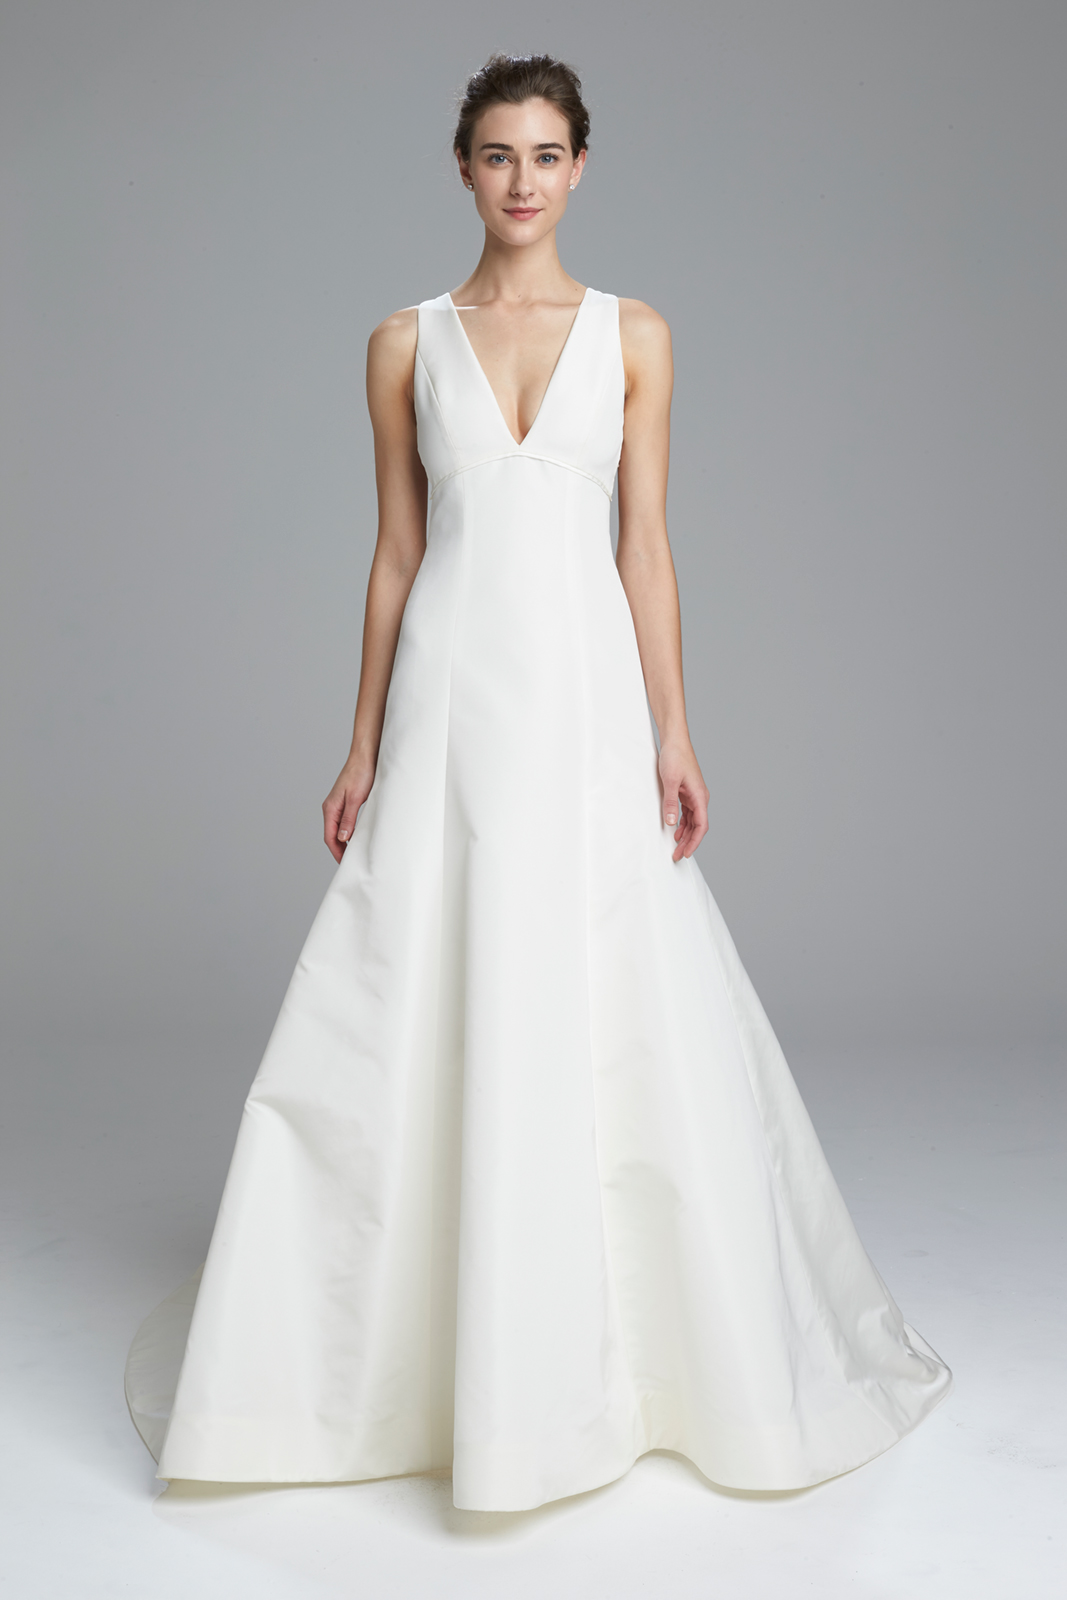 Simple Wedding Dresses Classic Designer Bridal Gown Styles Inside